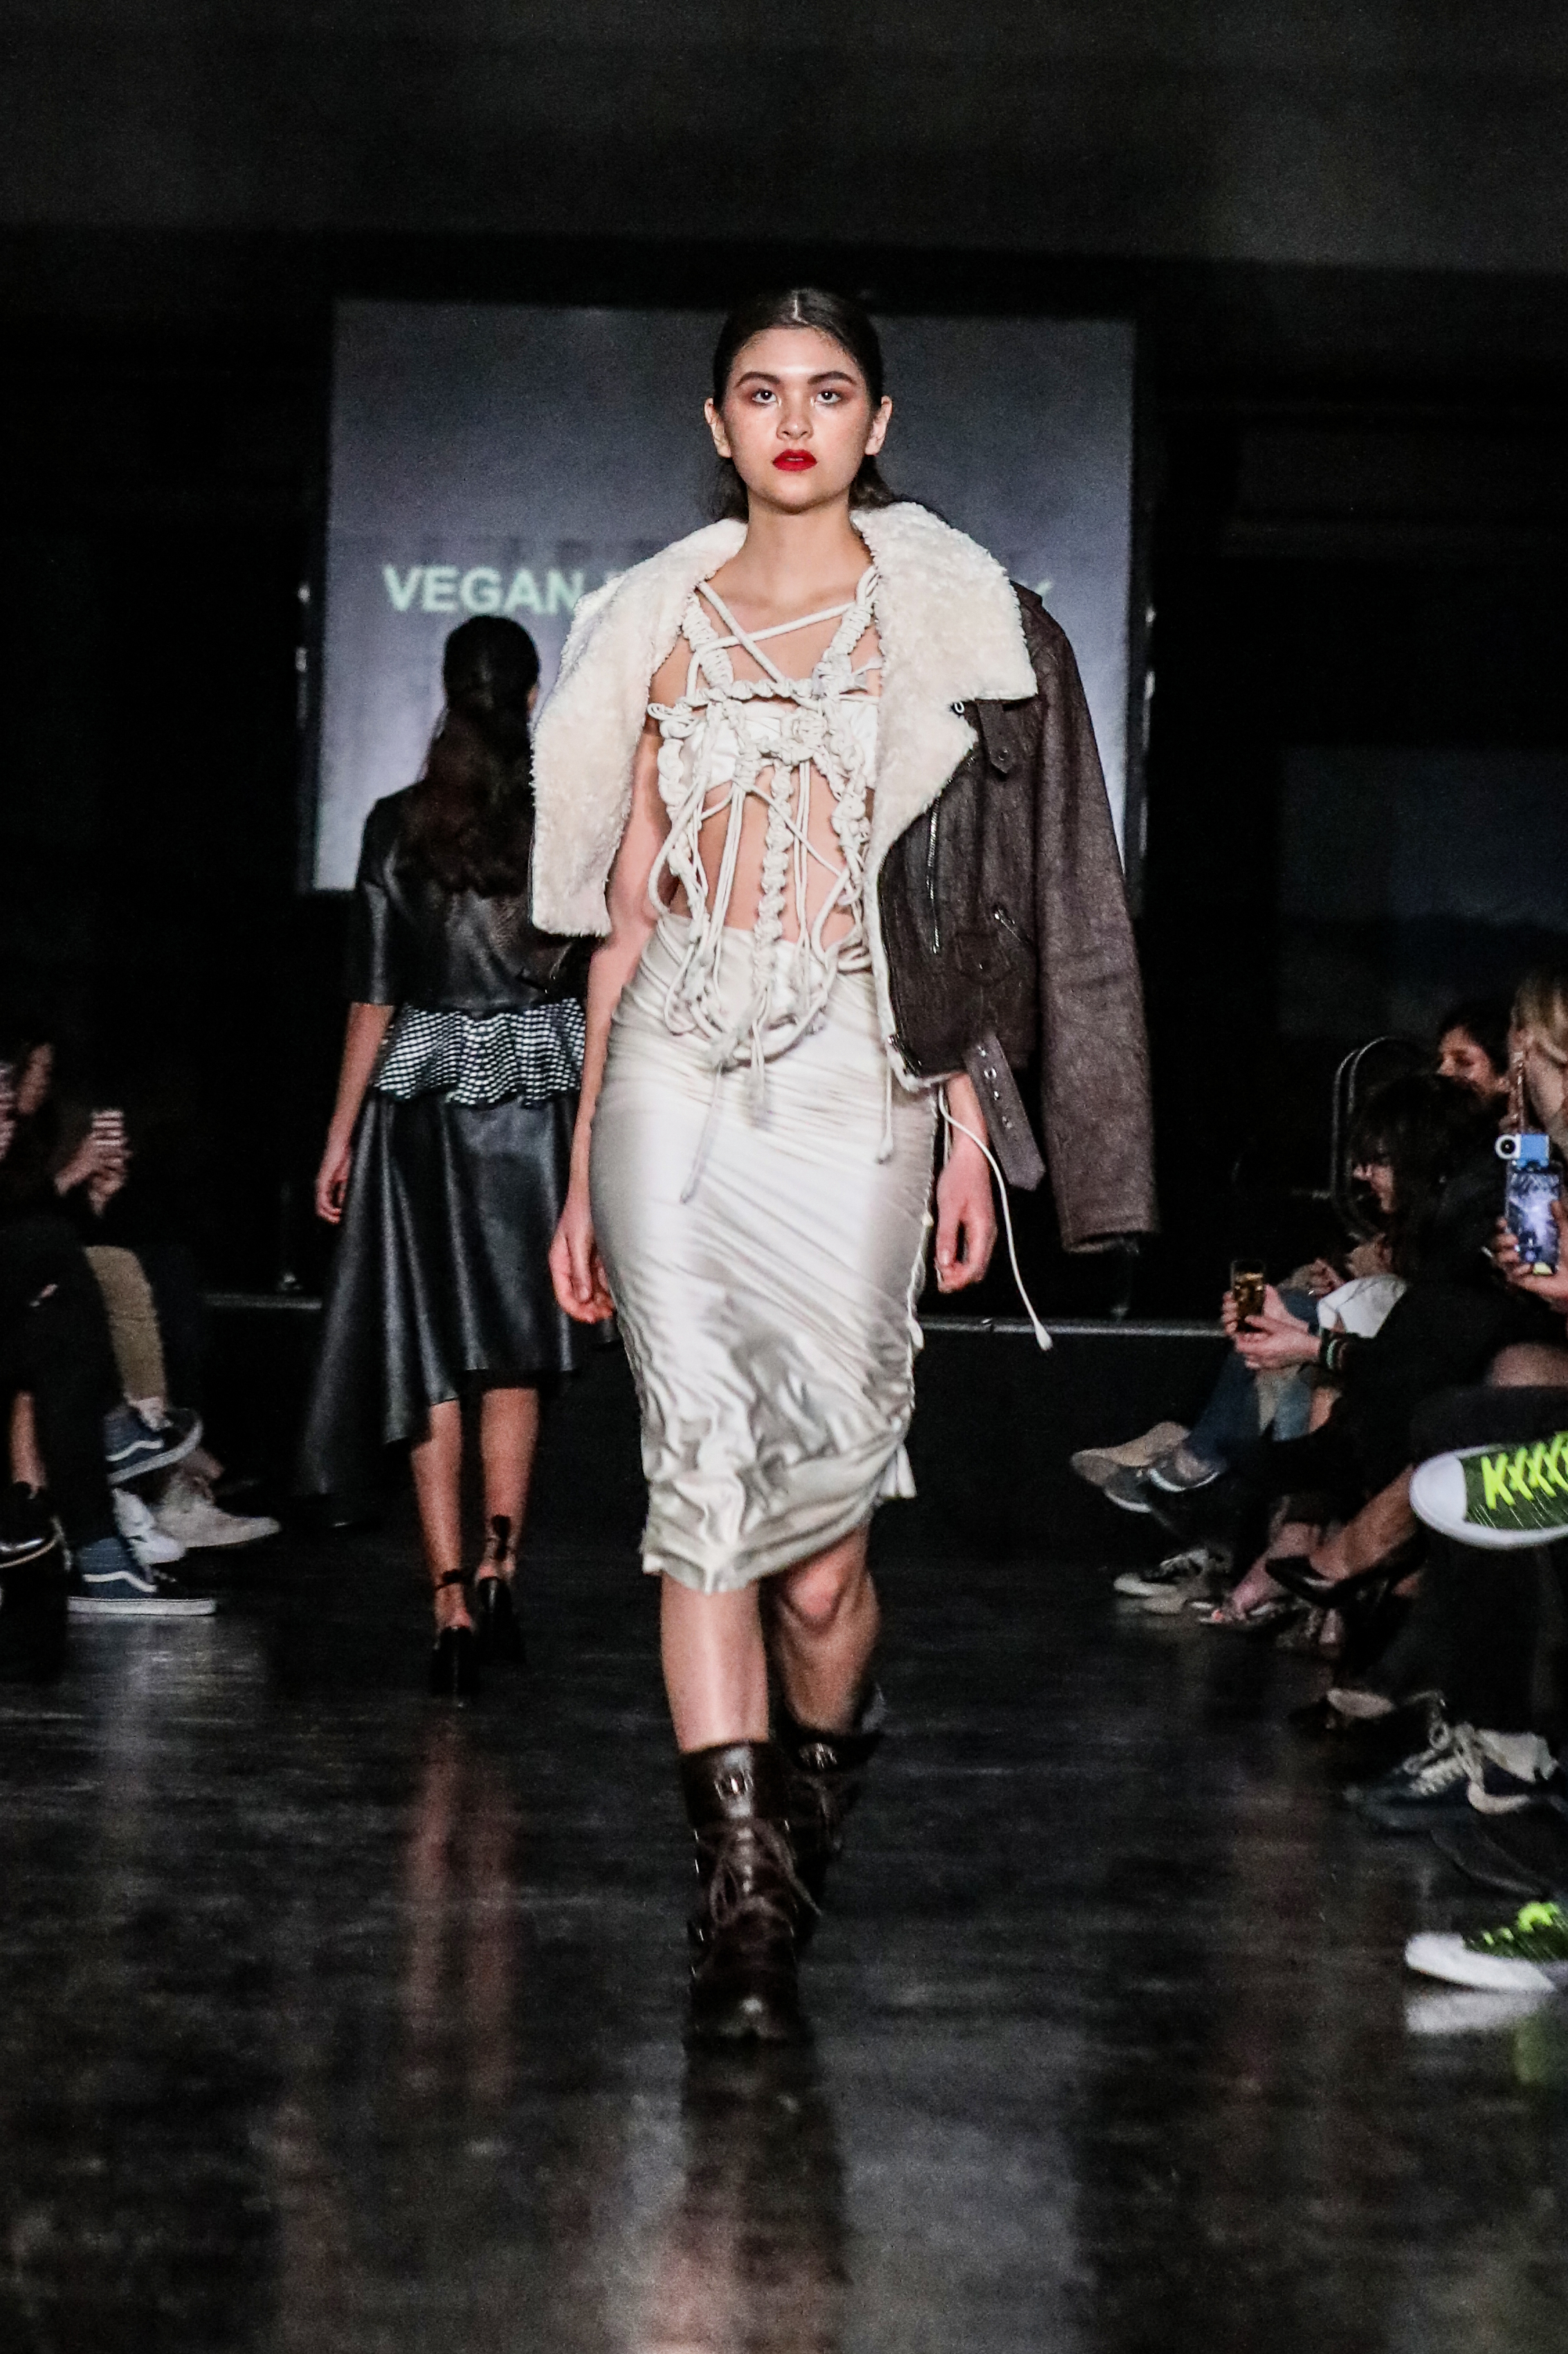 Vegan Fashion Week 2019 - Hey Mishka 23